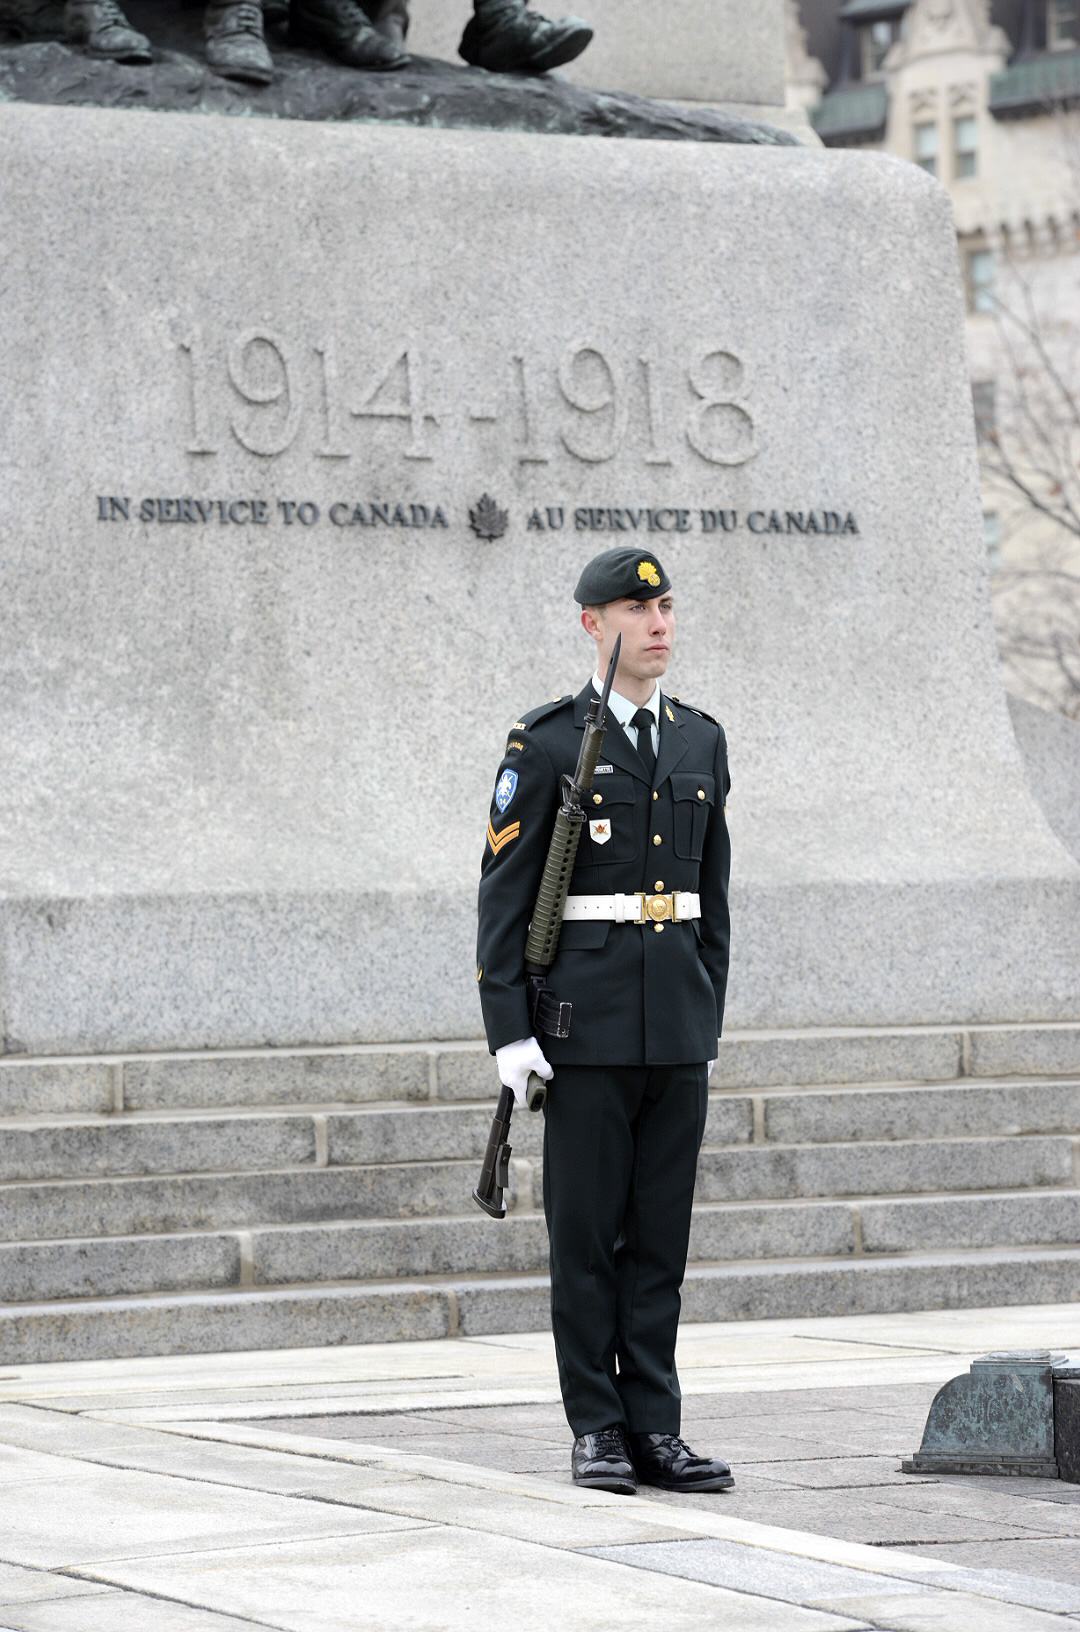 Ottawa, Ontario. 9 April 2015 – Corporal Gaël Danguy-Pichette from Les Fusiliers Mont-Royal takes his position at the Tomb of the Unknown Soldier at the launch of the National Sentry Program for 2015. Les Fusiliers Mont-Royal are a regiment based from Québec that holds the Vimy Battle Honour. (Photo: Sgt Dan Shouinard, Directorate of Army Public Affairs)